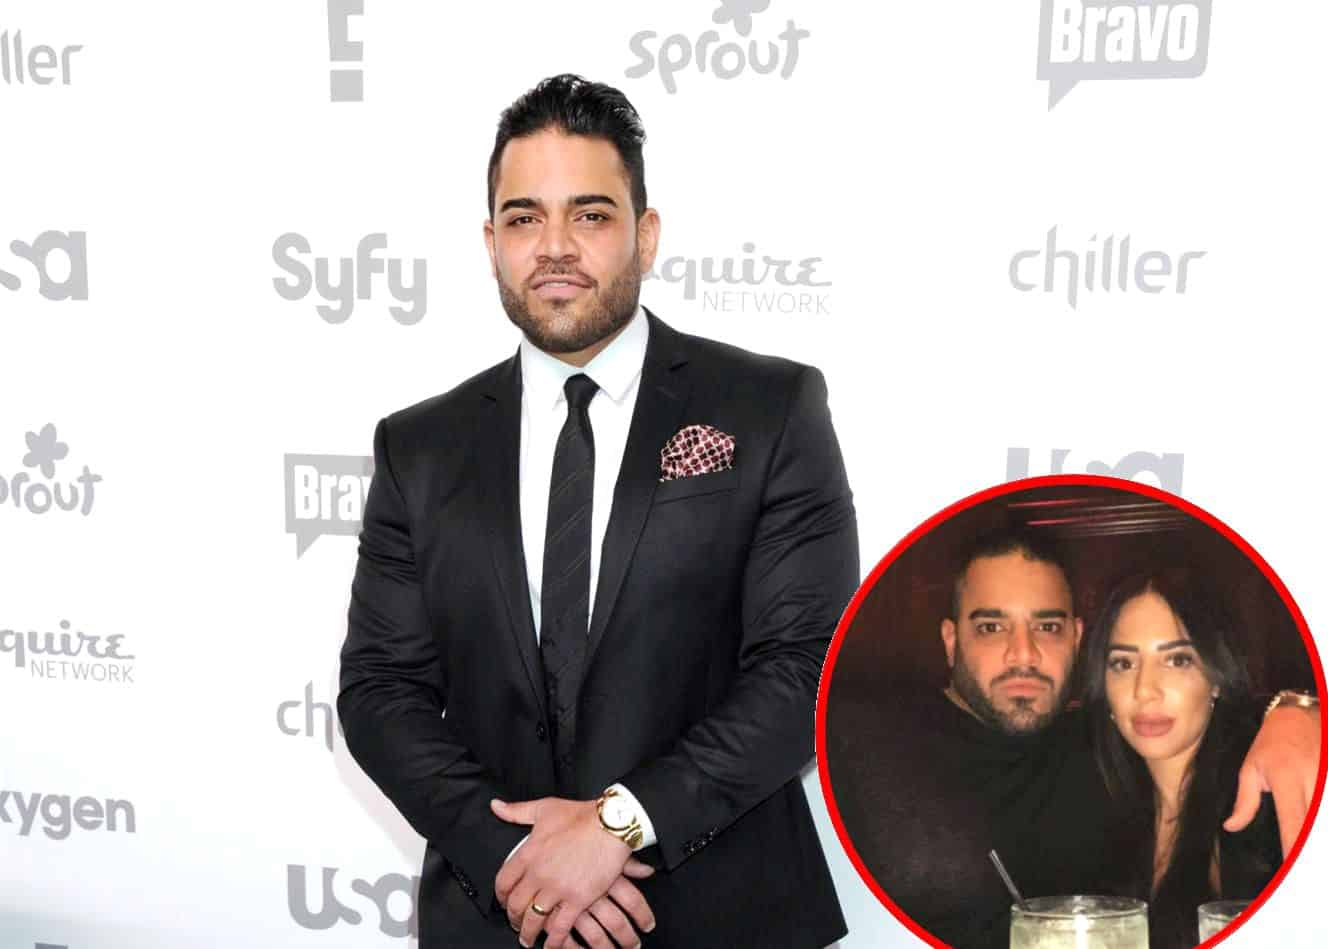 Mike Shouhed Shares Update on Relationship With Girlfriend Paulina Ben-Cohen Following Sexting Scandal and Dramatic Shahs of Sunset Premiere